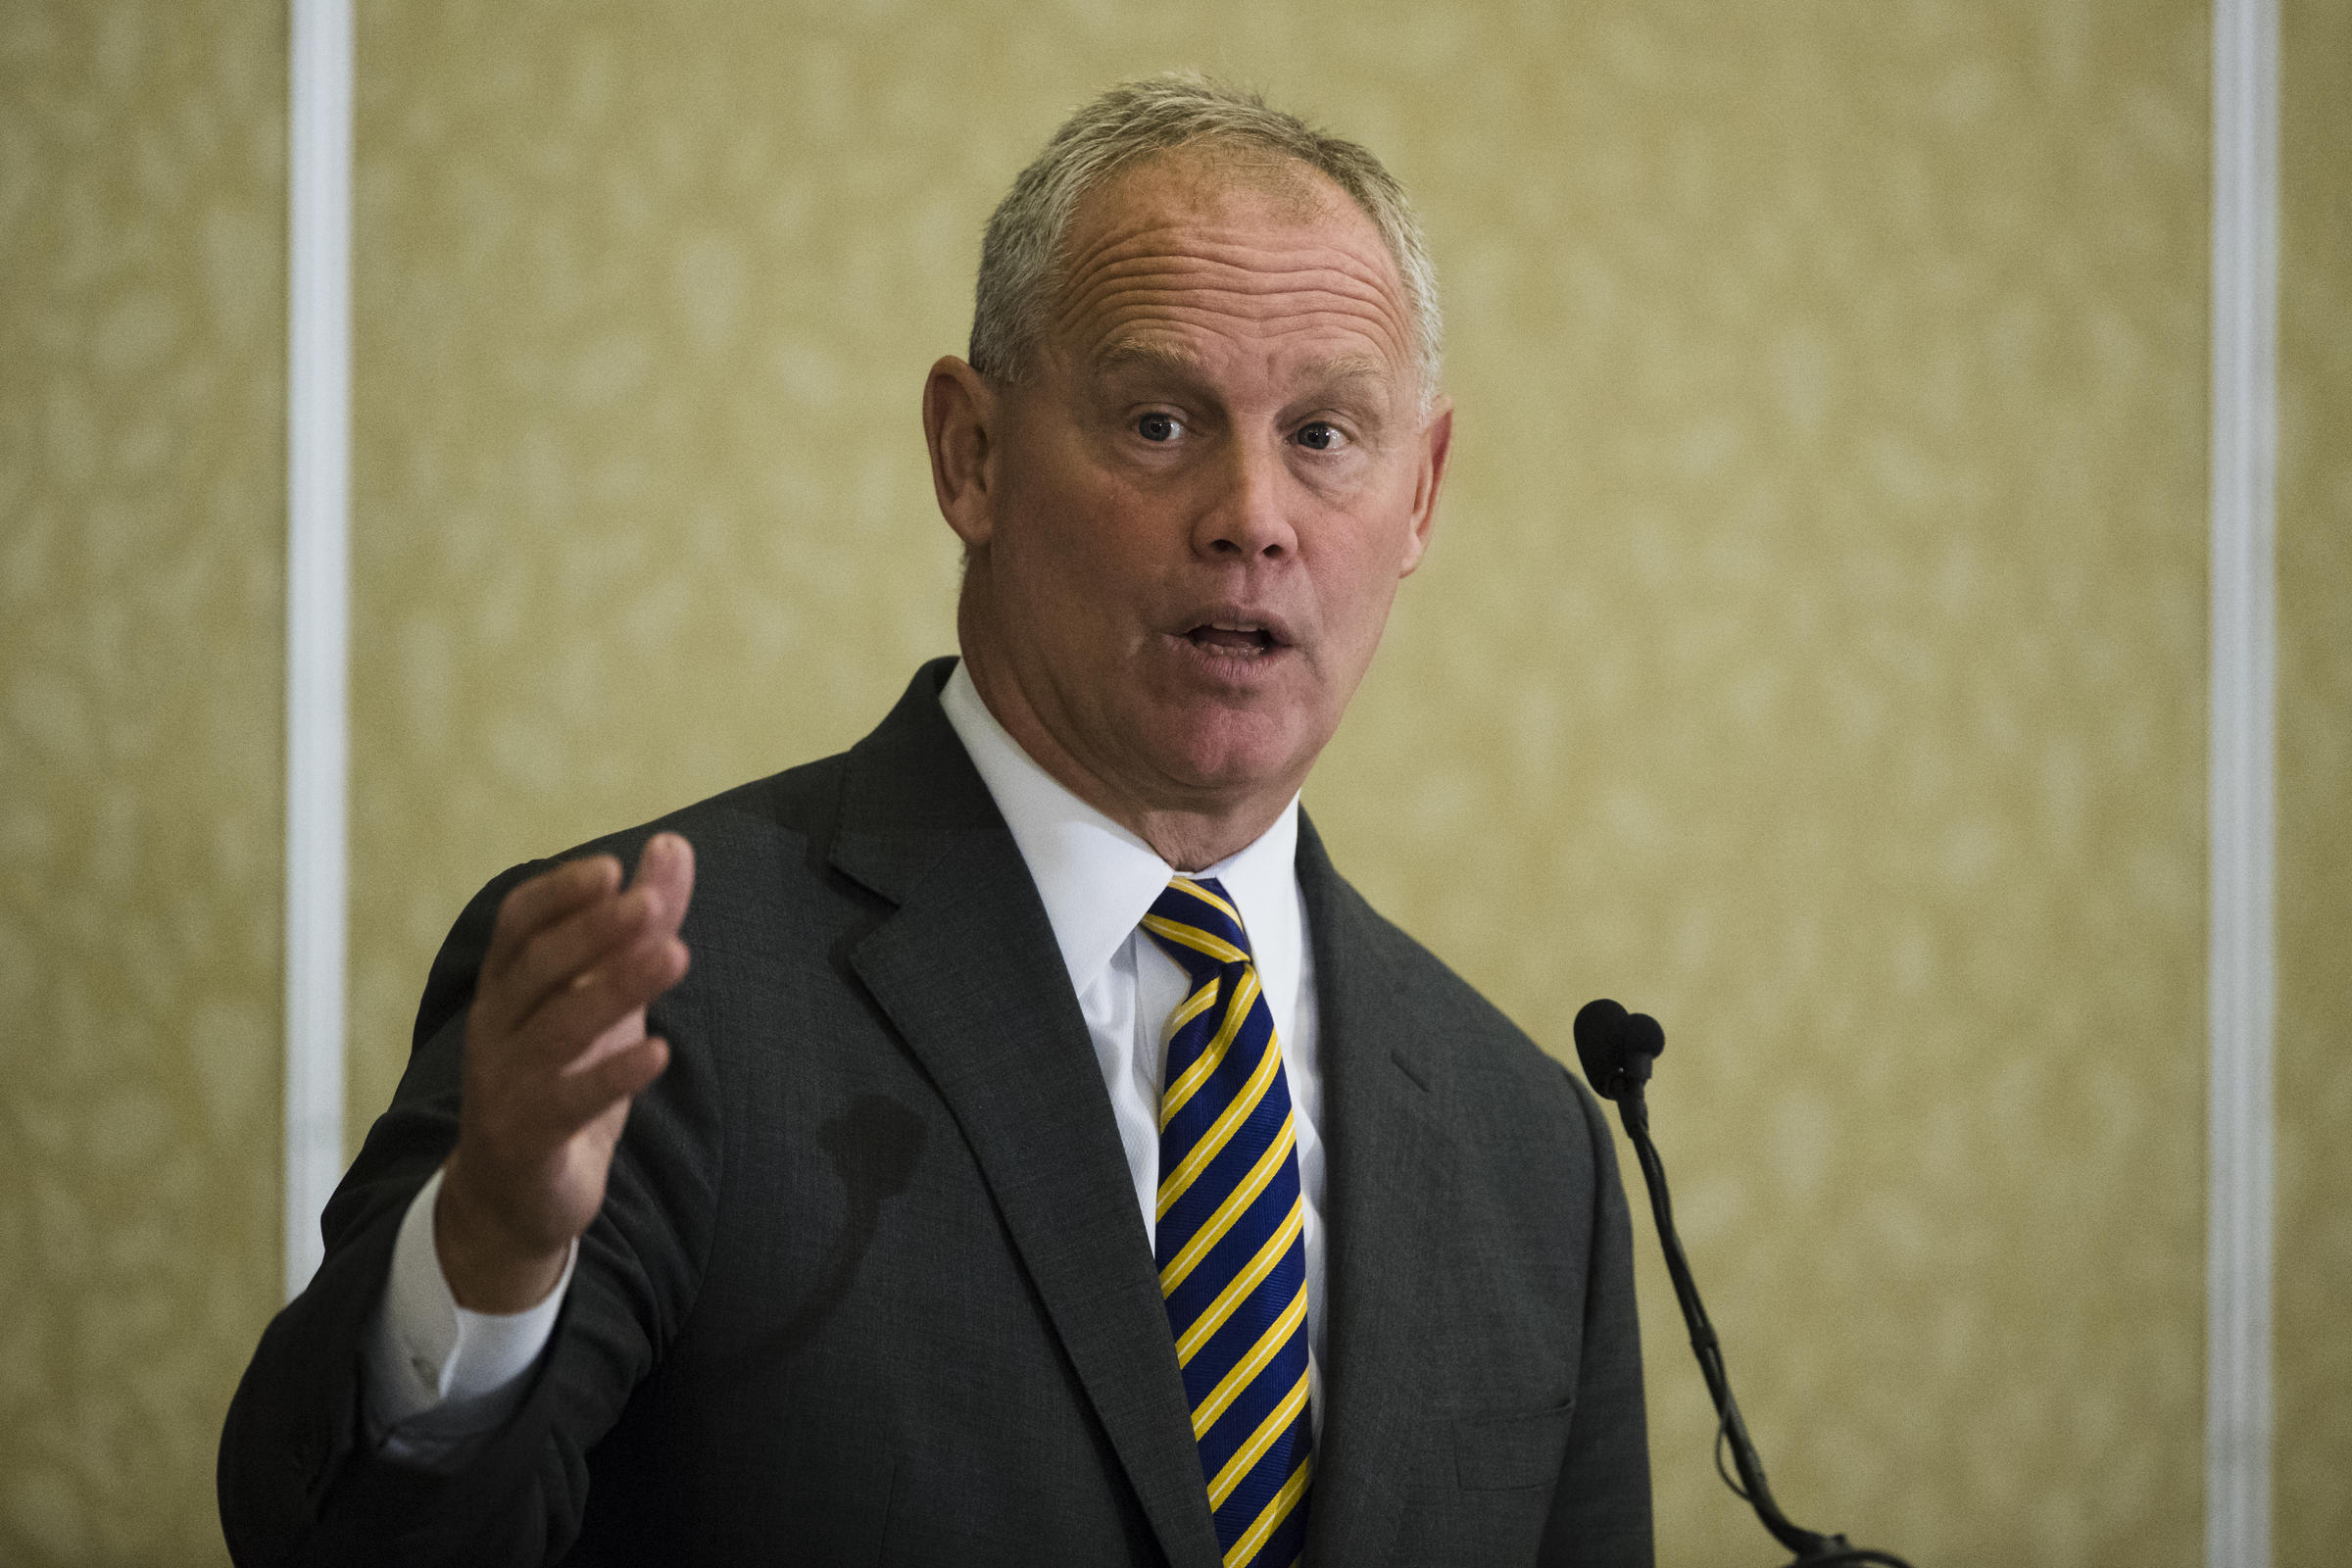 Mike Turzai, State Representative, Pennsylvania